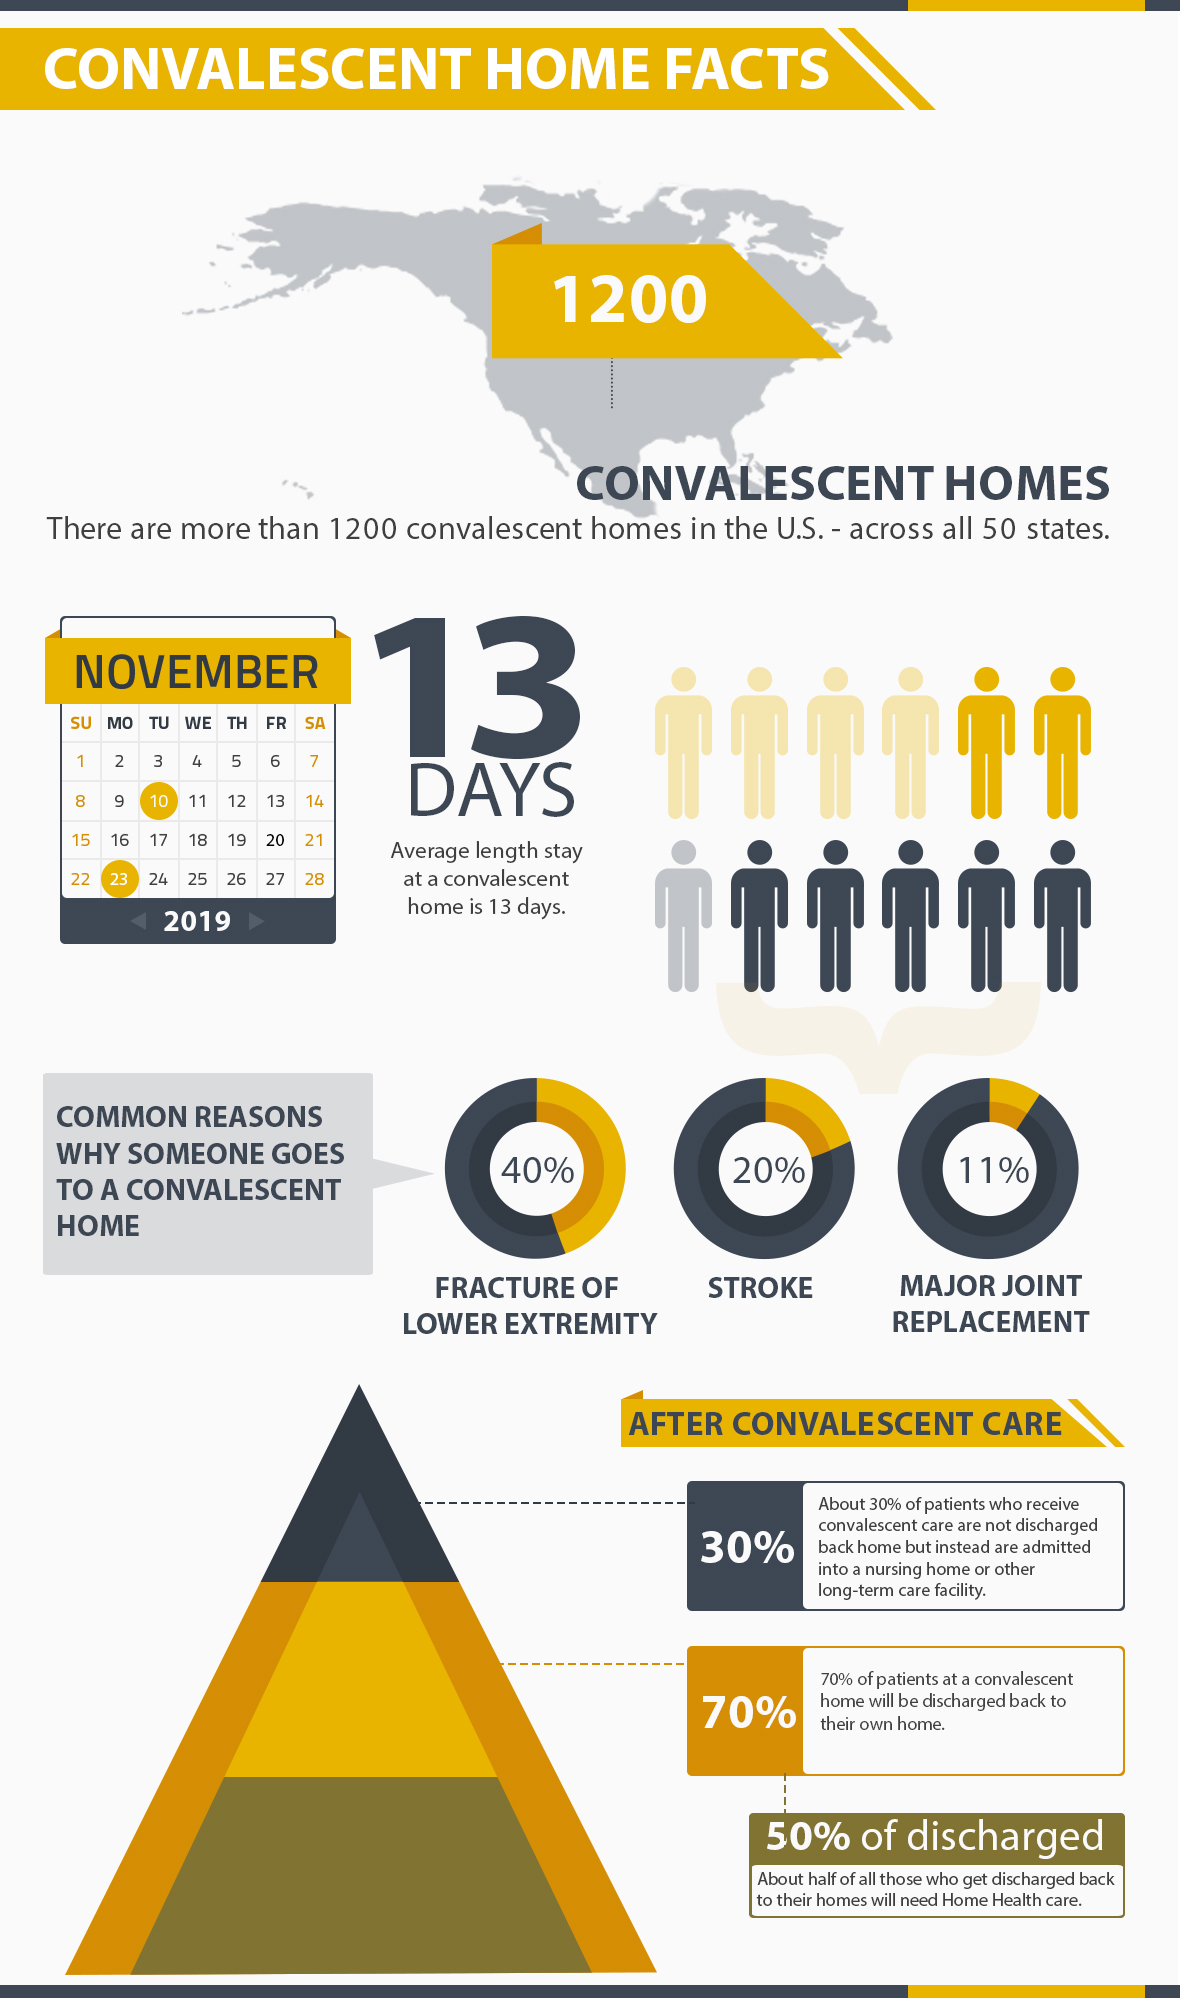 Convalescent InfoGraphic - What is a Convalescent Home?